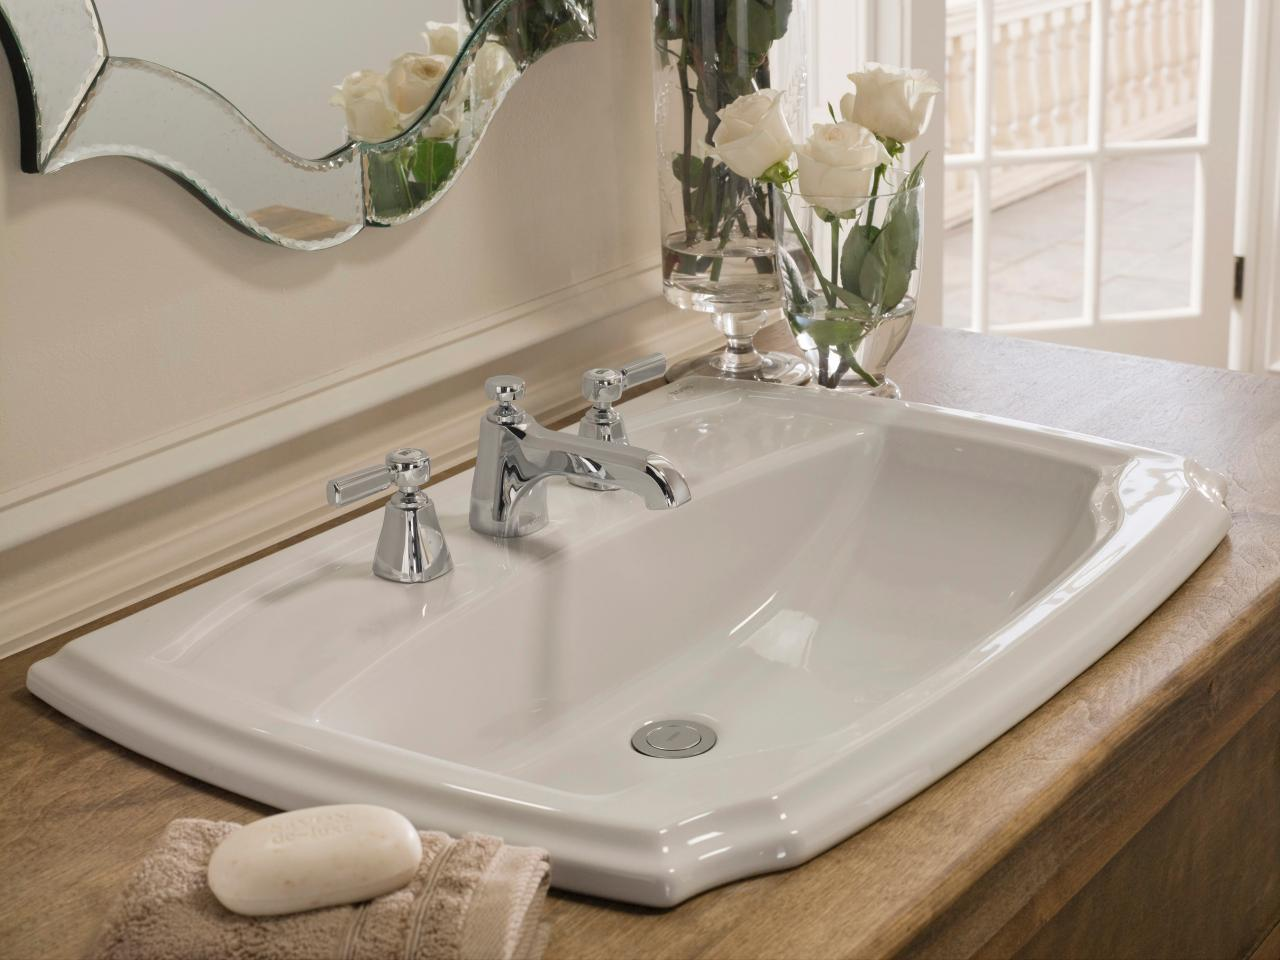 Self Rimming Sink A Self Rimming Sink Is The Easiest To